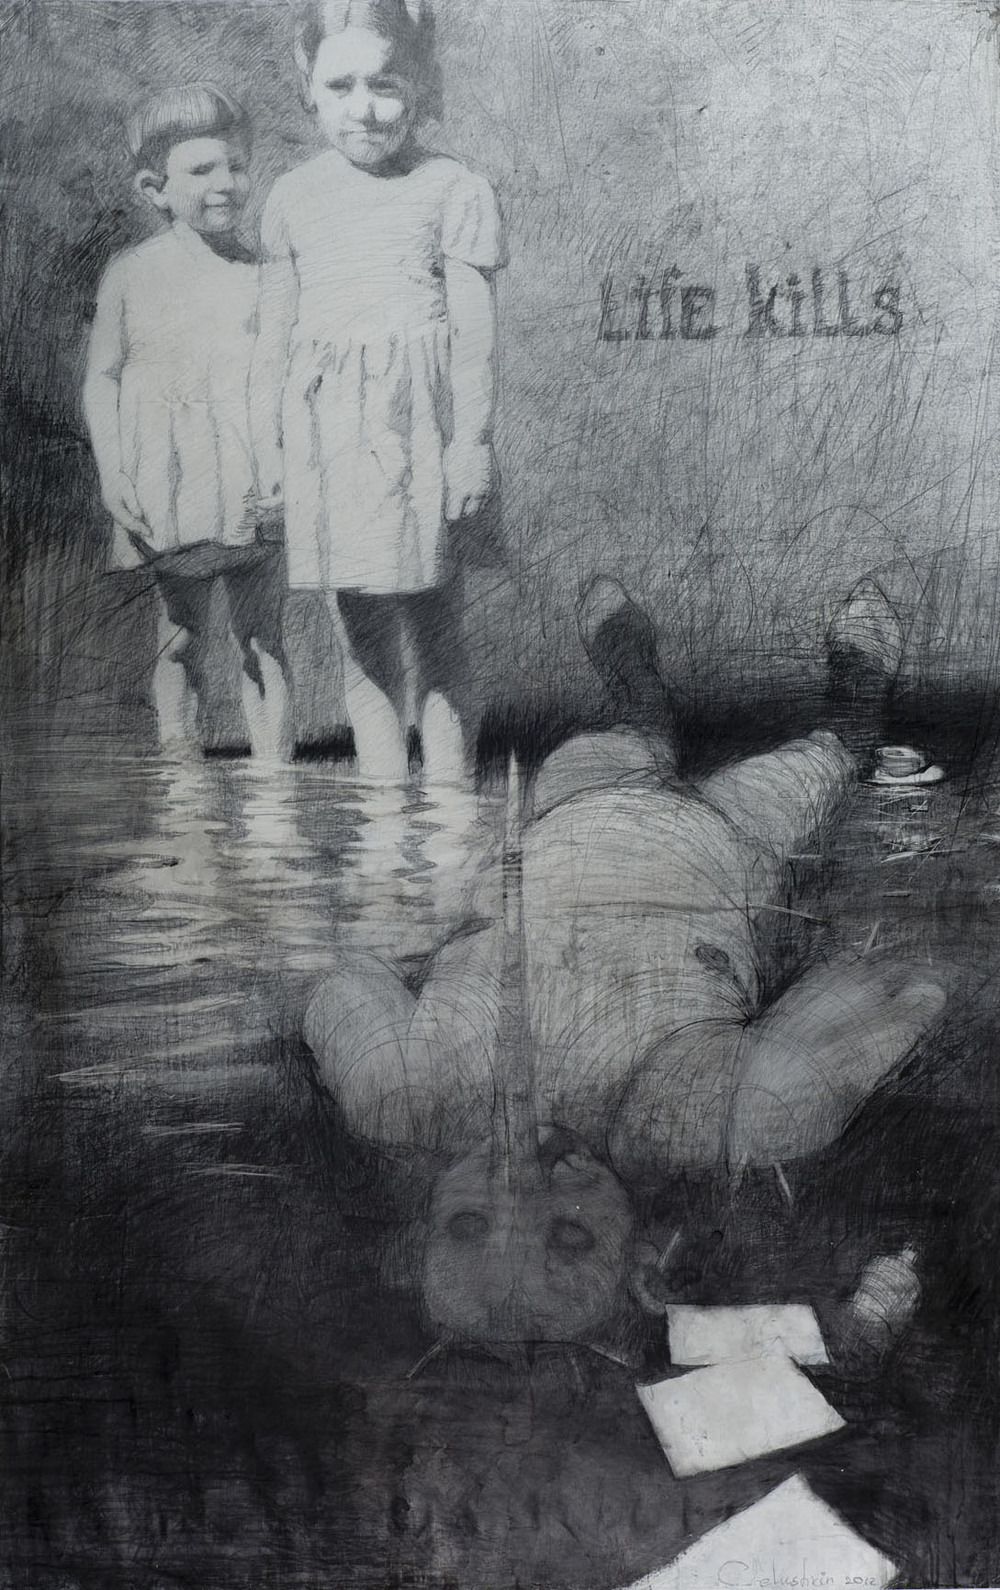 Kirill Chelushkin, Untitled Life Kills, 2012, drawing, 210 x 139 cm - Courtesy the artist and Rabouan Moussion Gallery Paris